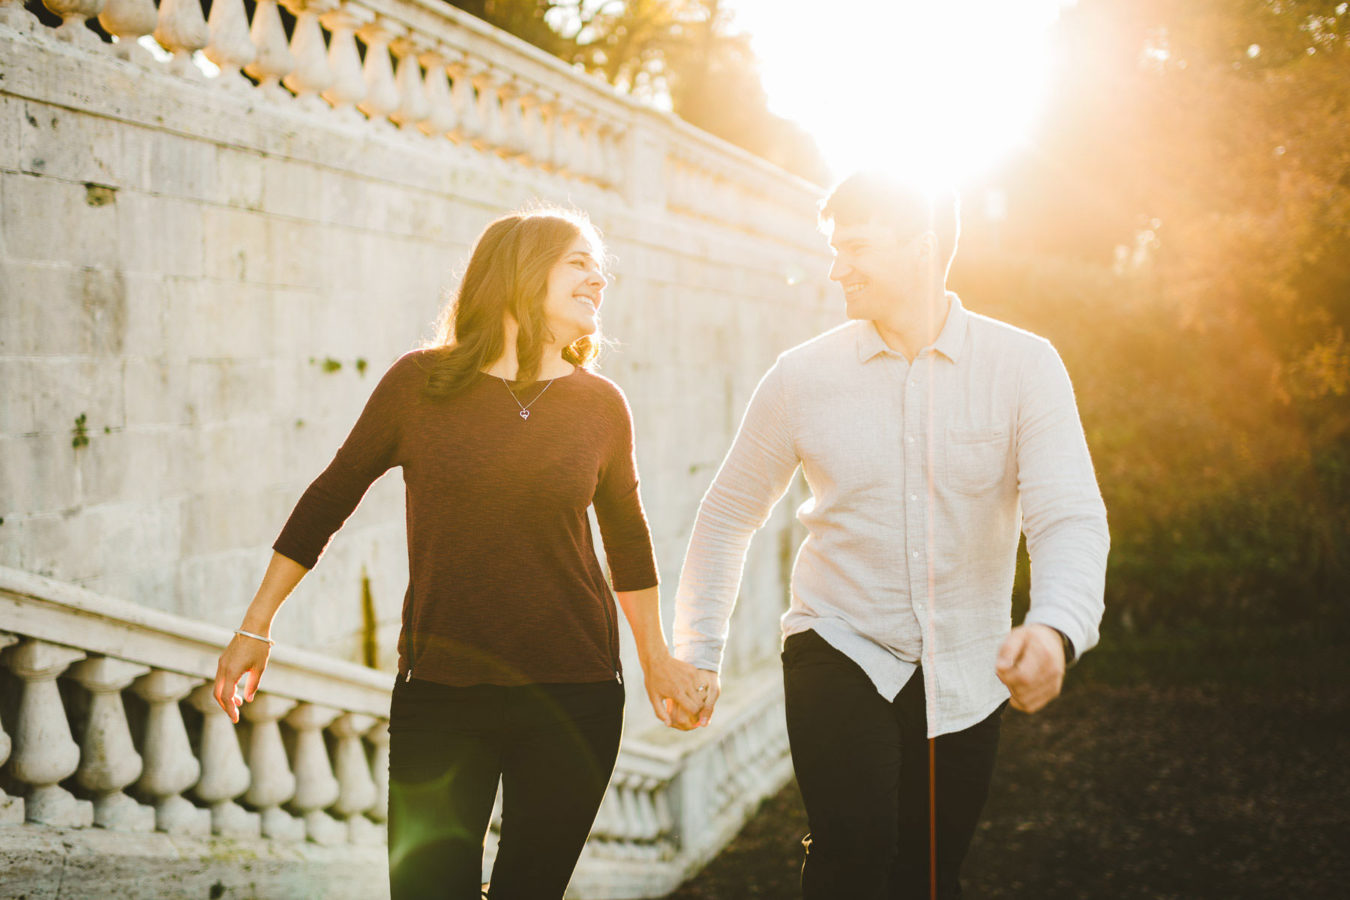 Exciting australian couple portrait candid photo in Florence San Miniato al Monte Golden hour